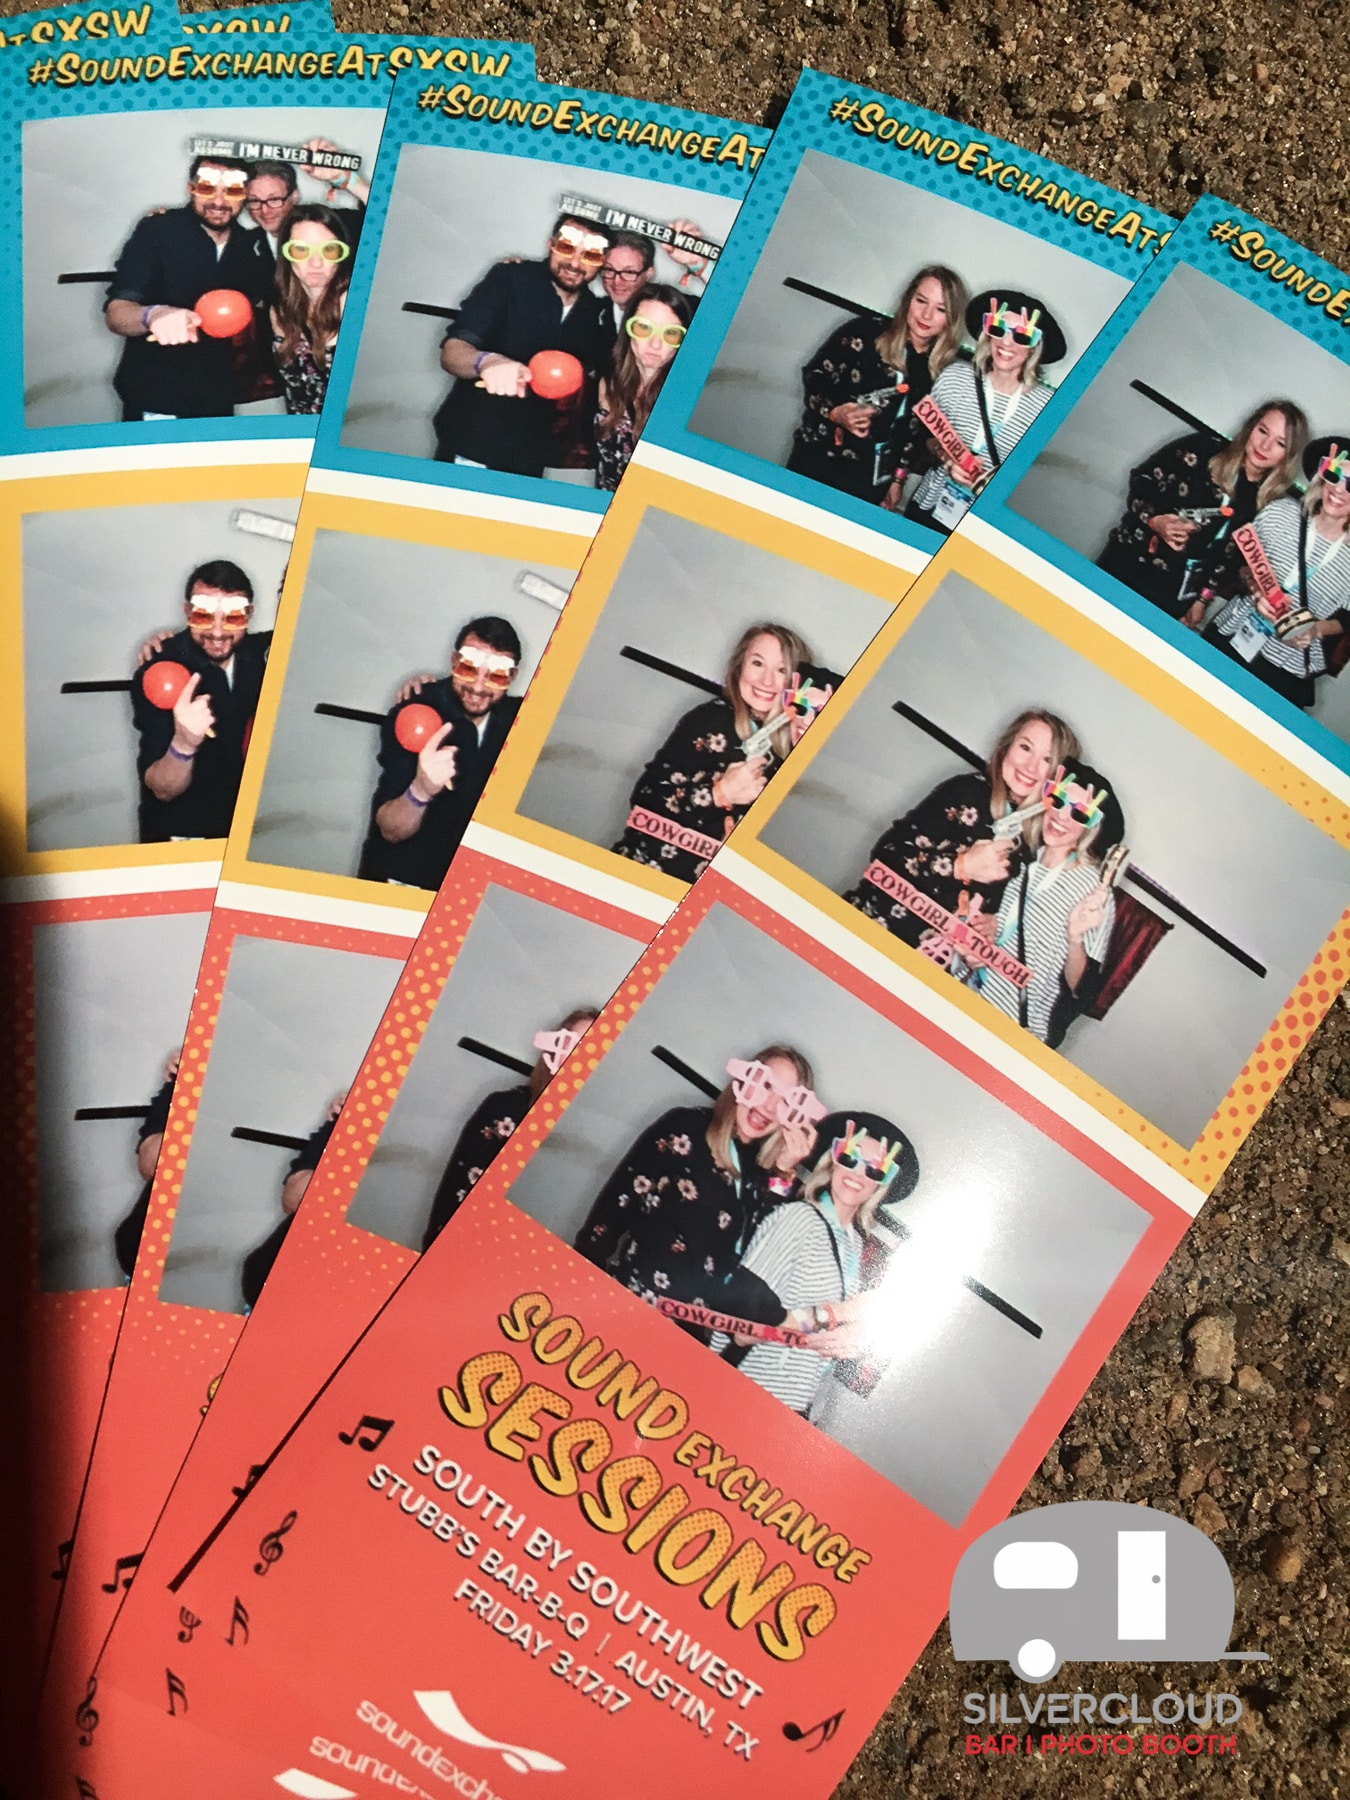 Branded photo print for SxSW Brand Activation by Silvercloud